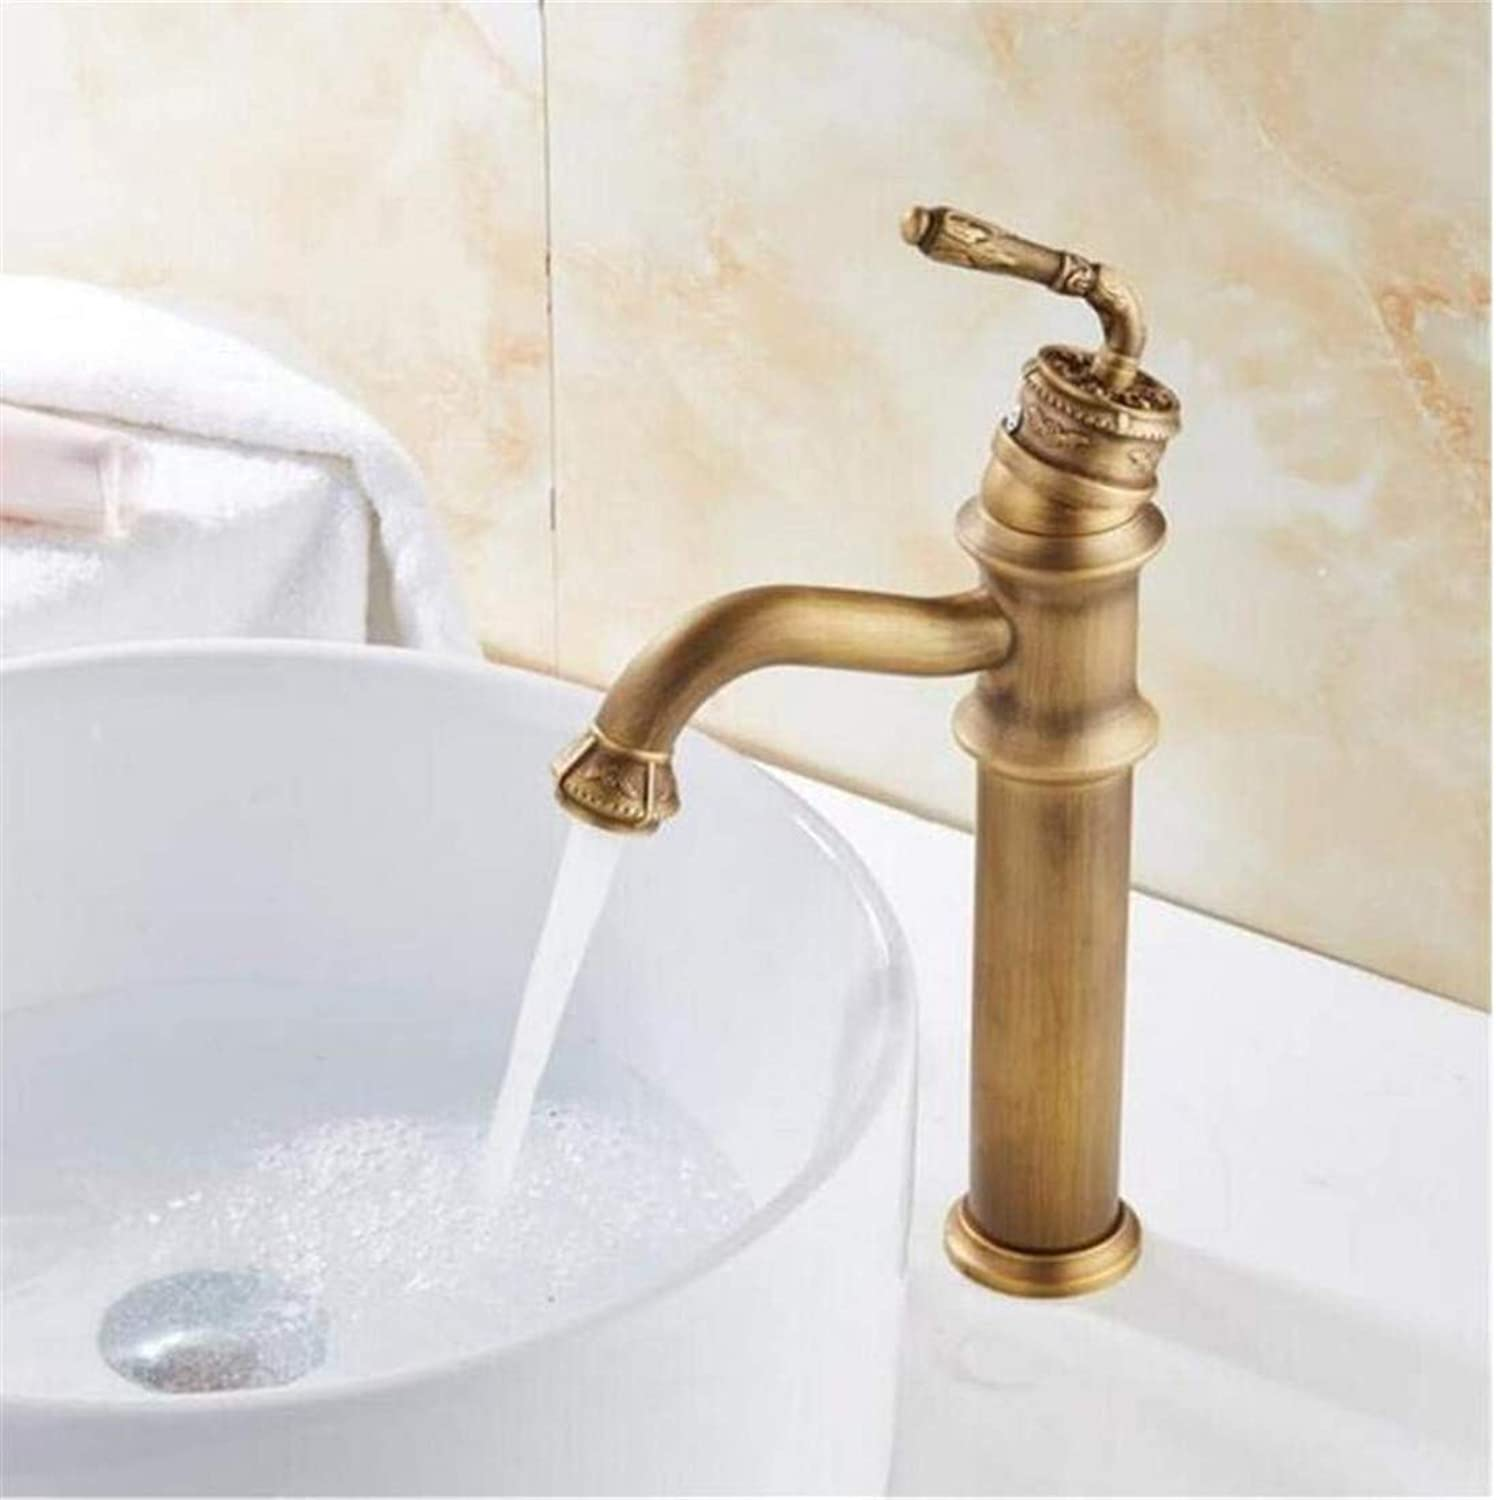 High Quality Vintage Stainless Steelbathroom Sink Faucet Luxury Basin Mixer Sink Faucet Tap Brass Water Tap